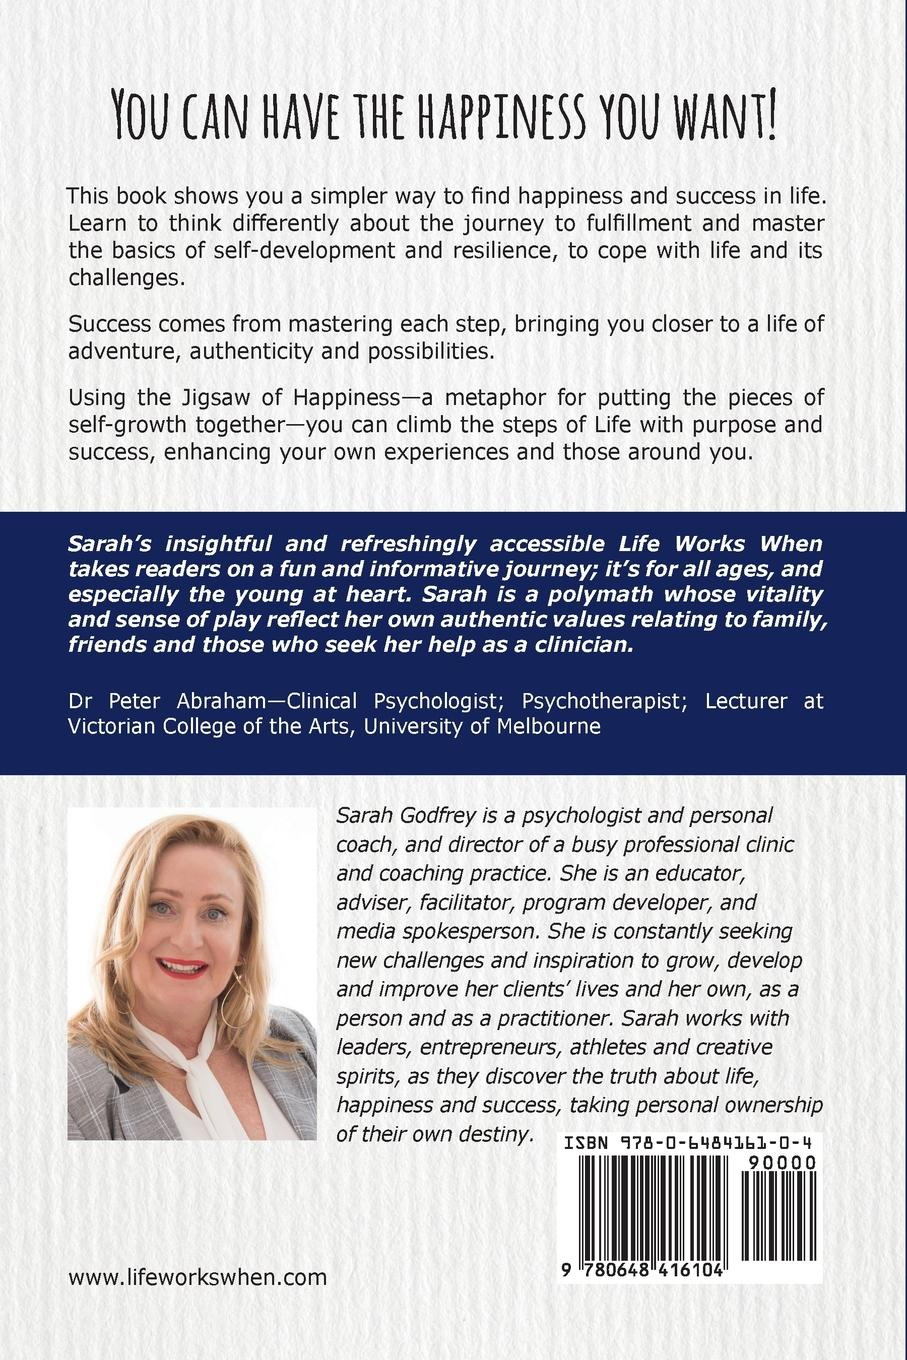 Sarah Godfrey Life Works When. A Story of Piecing Happiness Together for a Successful Life sarah godfrey life works when a story of piecing happiness together for a successful life